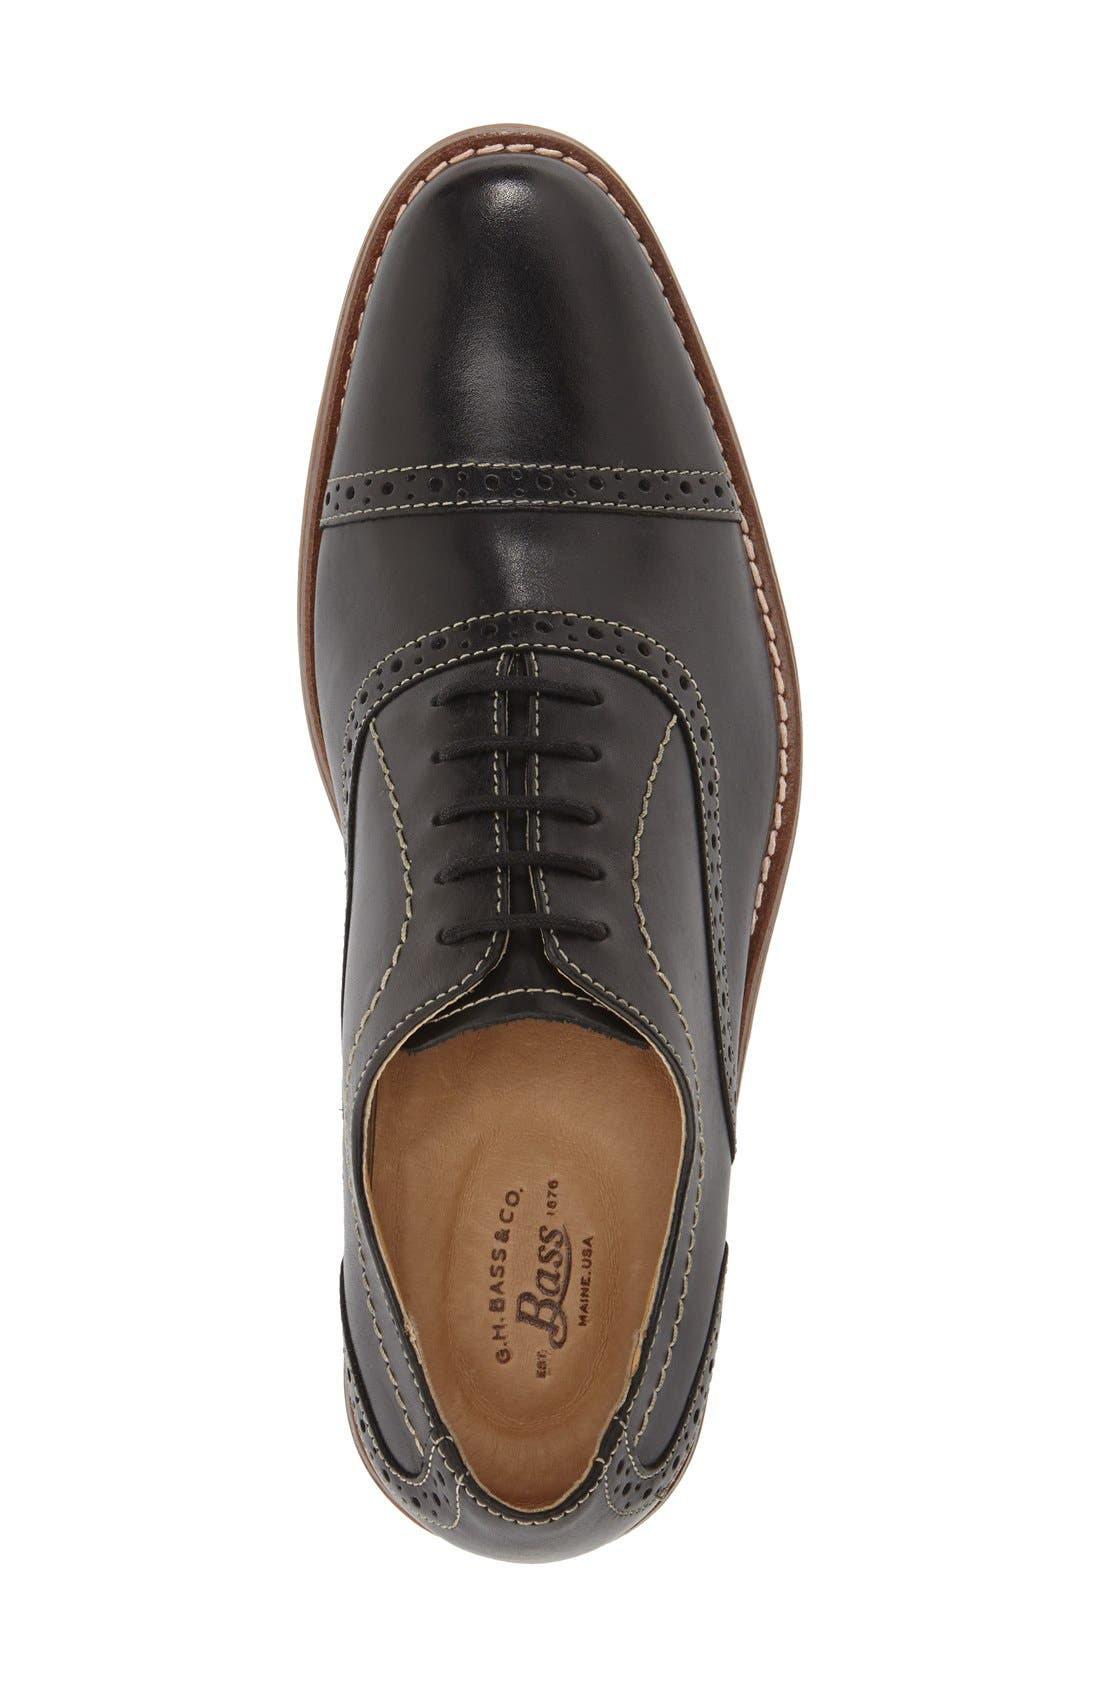 Alternate Image 3  - G.H. Bass & Co. 'Carnell' Cap Toe Oxford (Men)